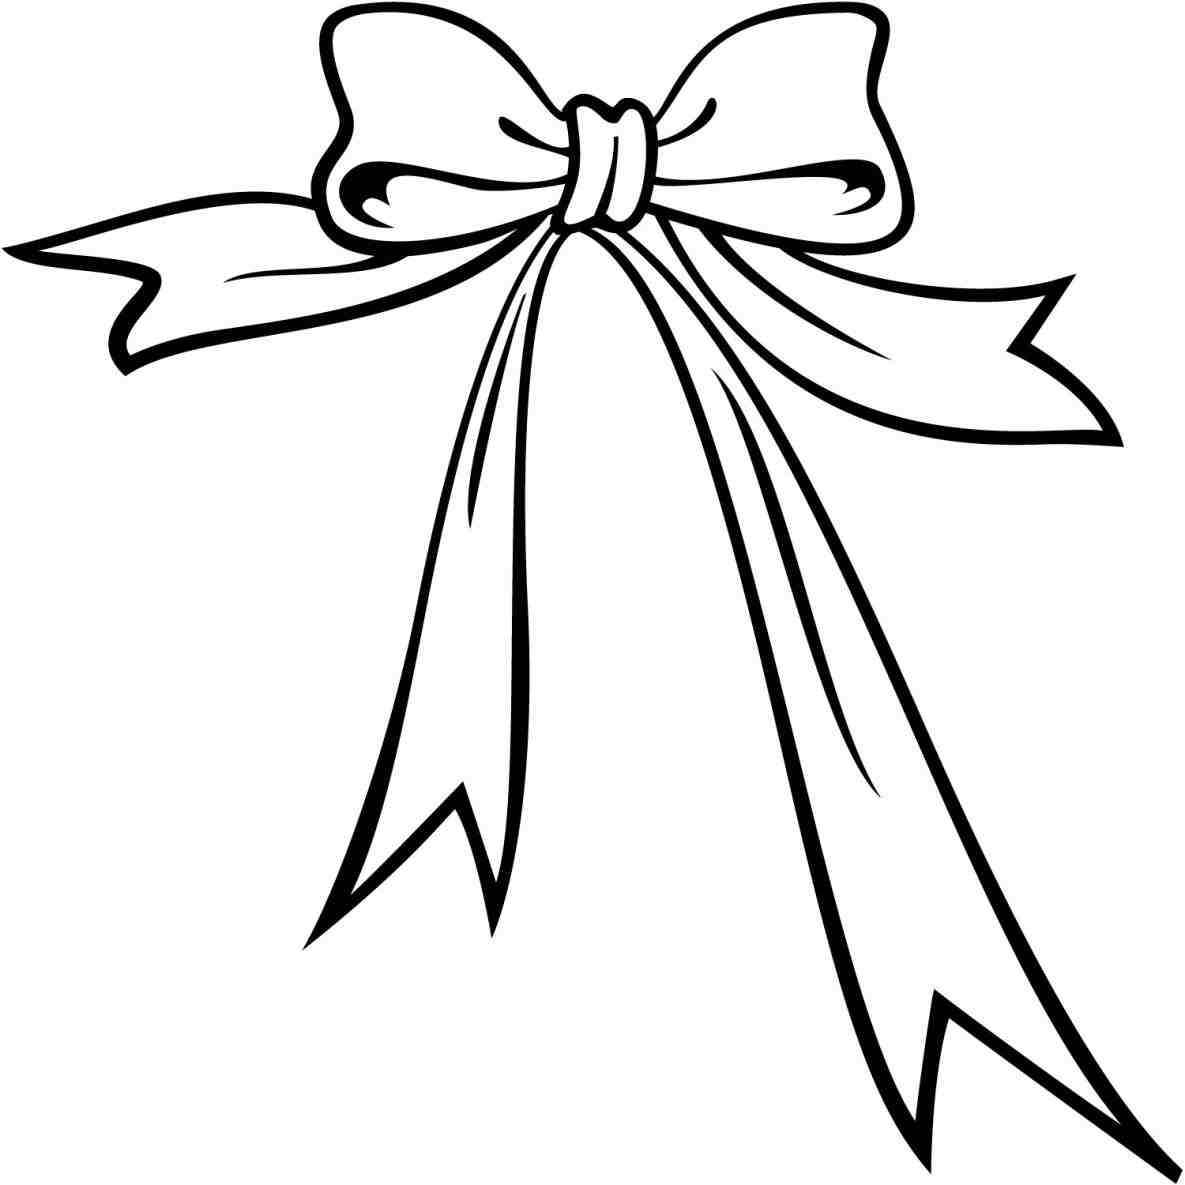 1185x1185 Christmas Present Clip Art Black And White Cheminee.website